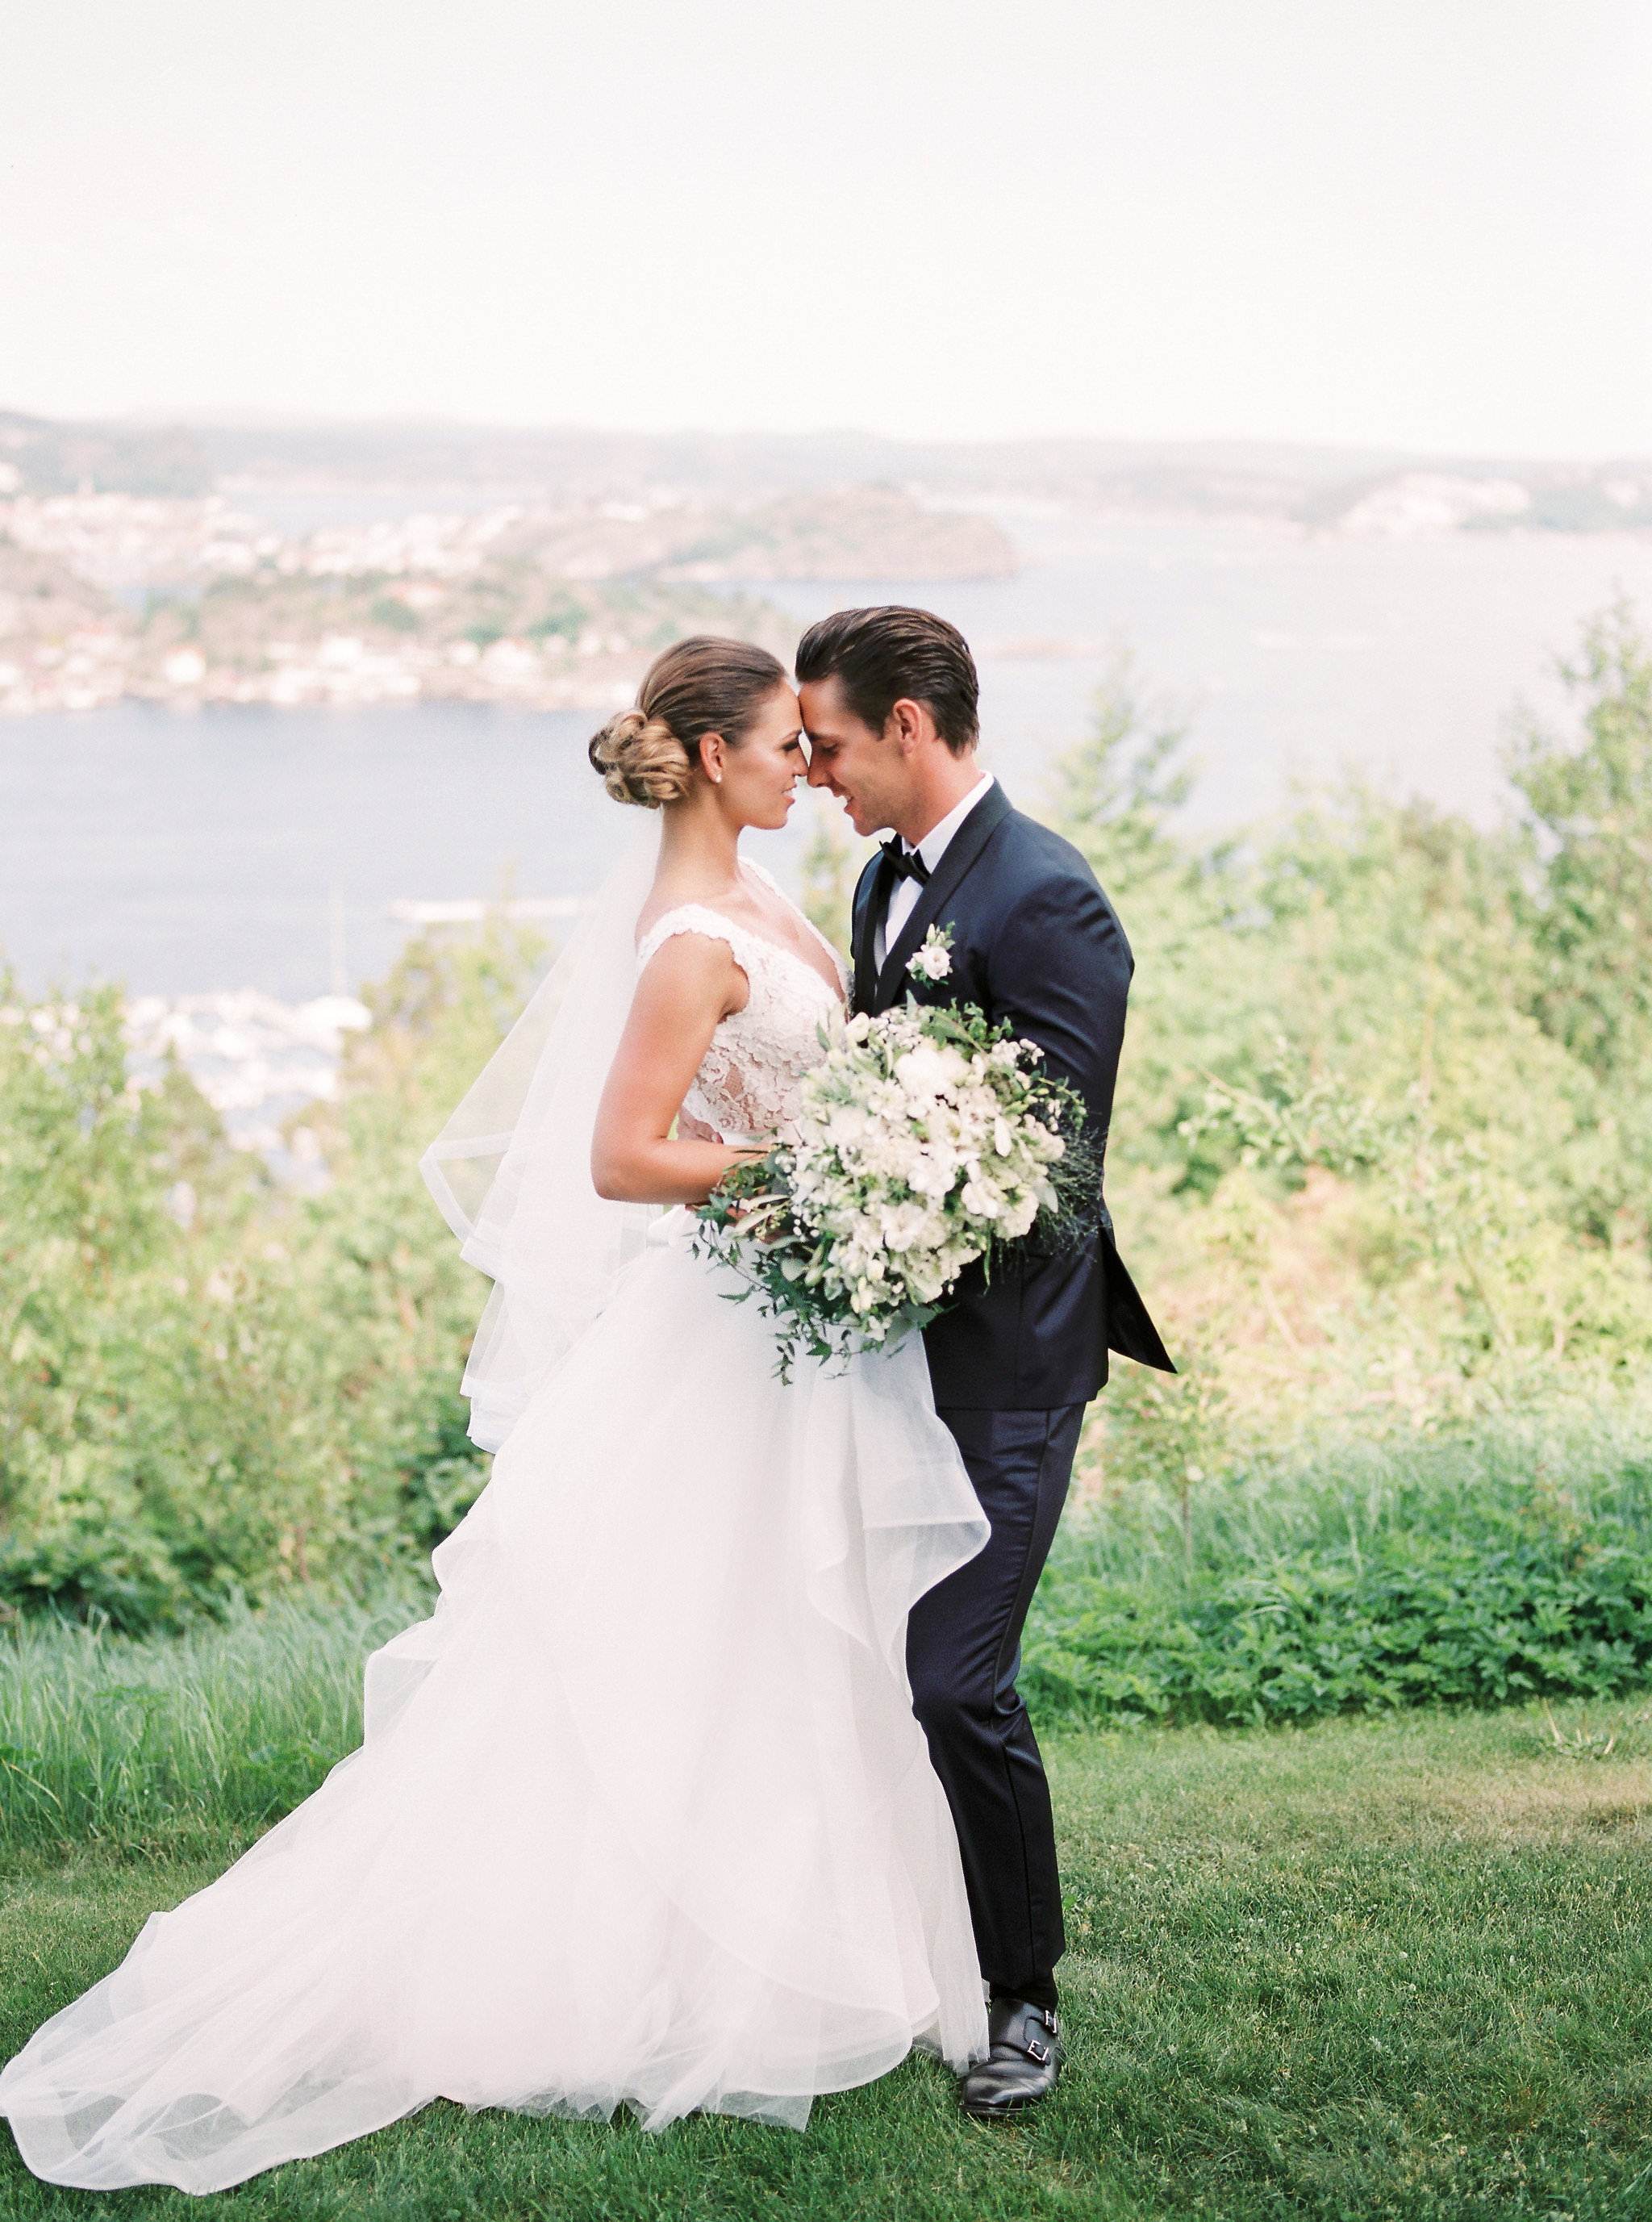 Pixlight-LinnogMikkelWedding-13.jpg